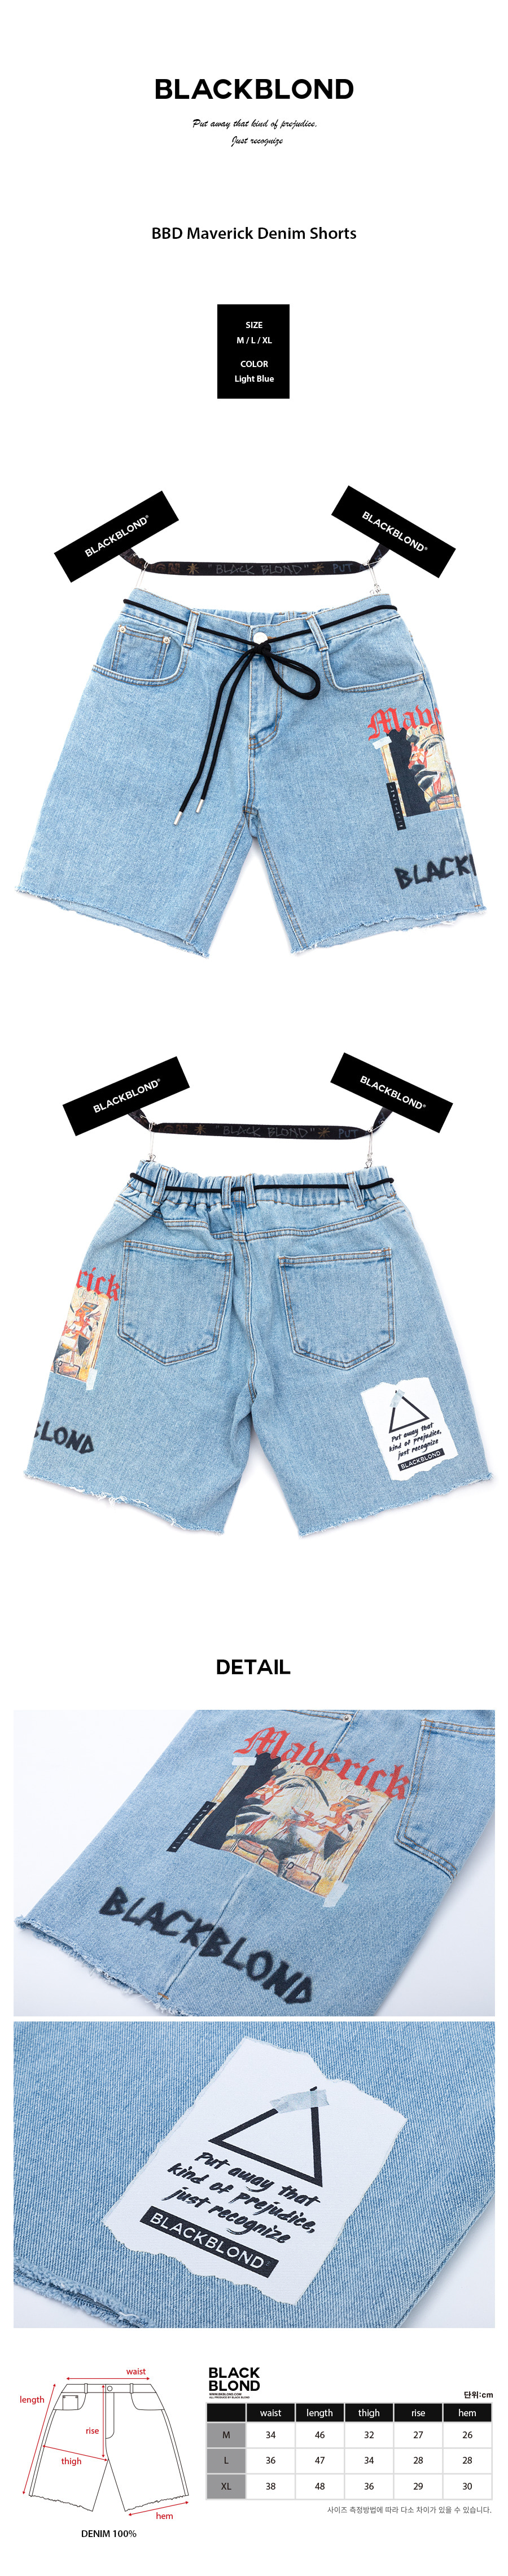 BLACKBLOND - BBD Maverick Denim Shorts (Light Blue)